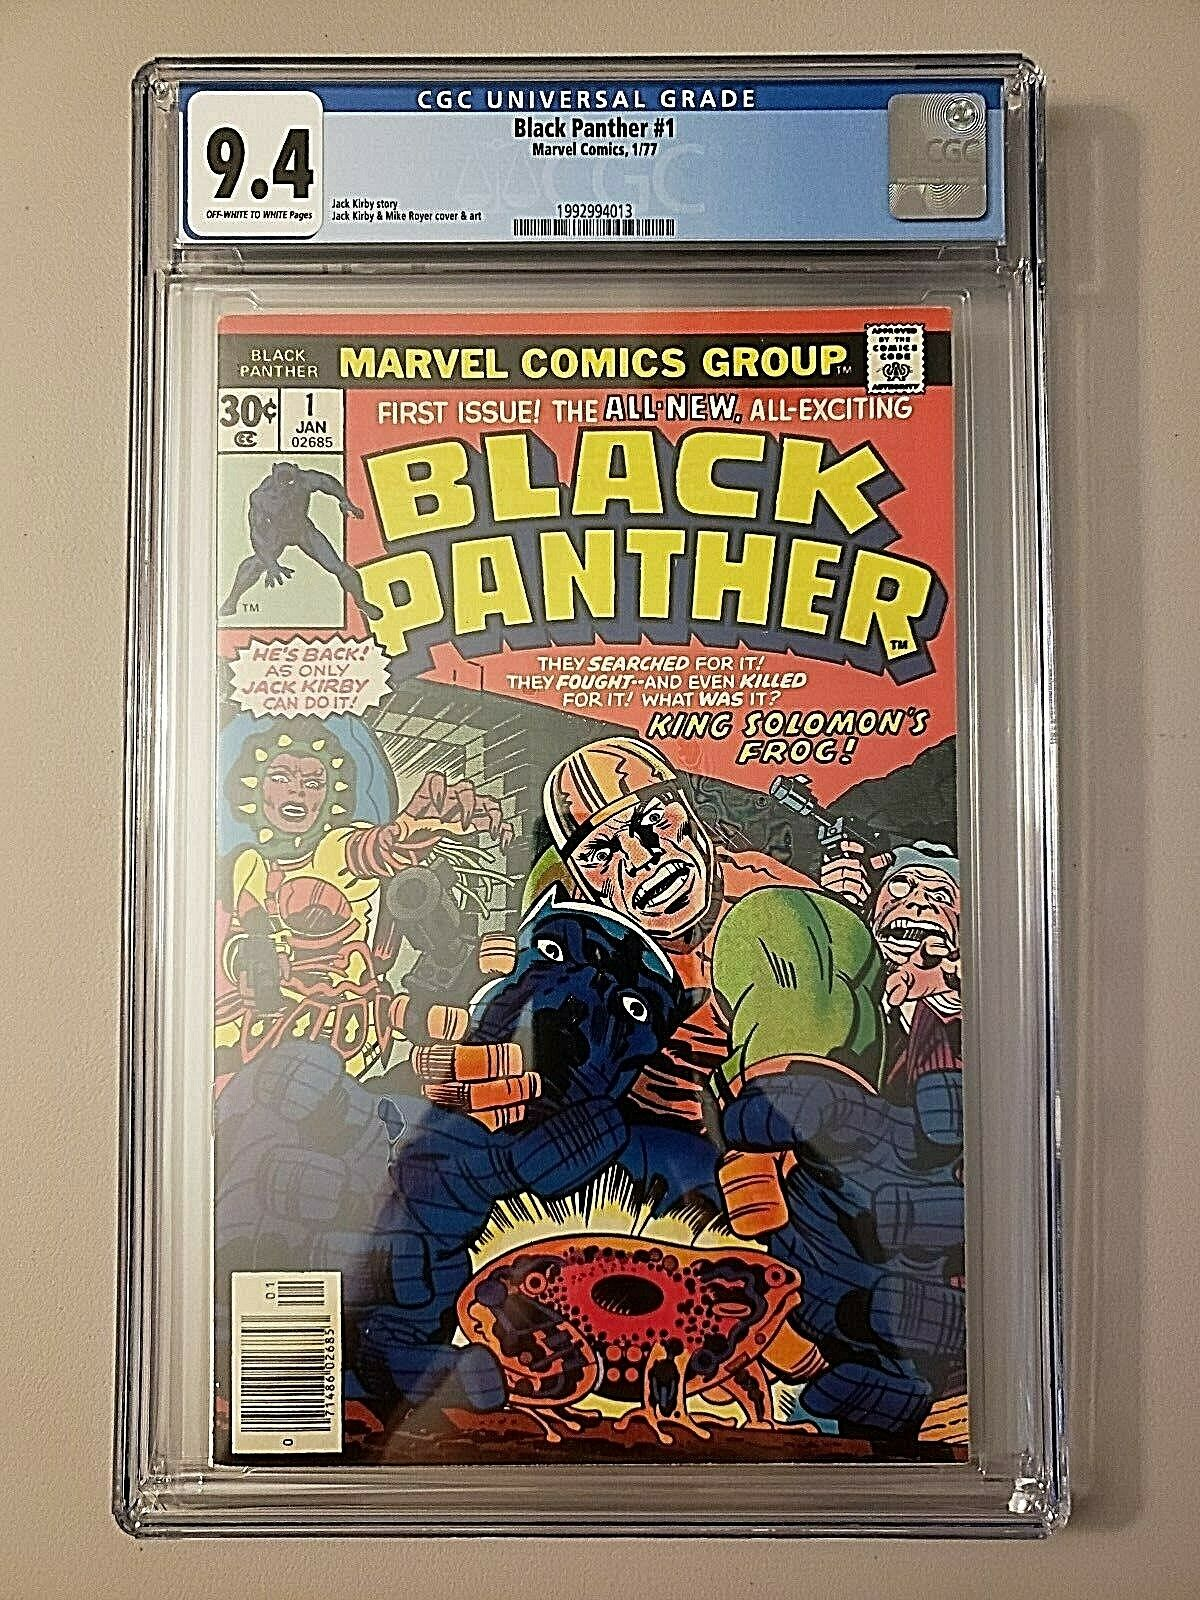 Black Panther #1 graded CGC NM 9.4 new case movie 1977 1976 fantastic four 52